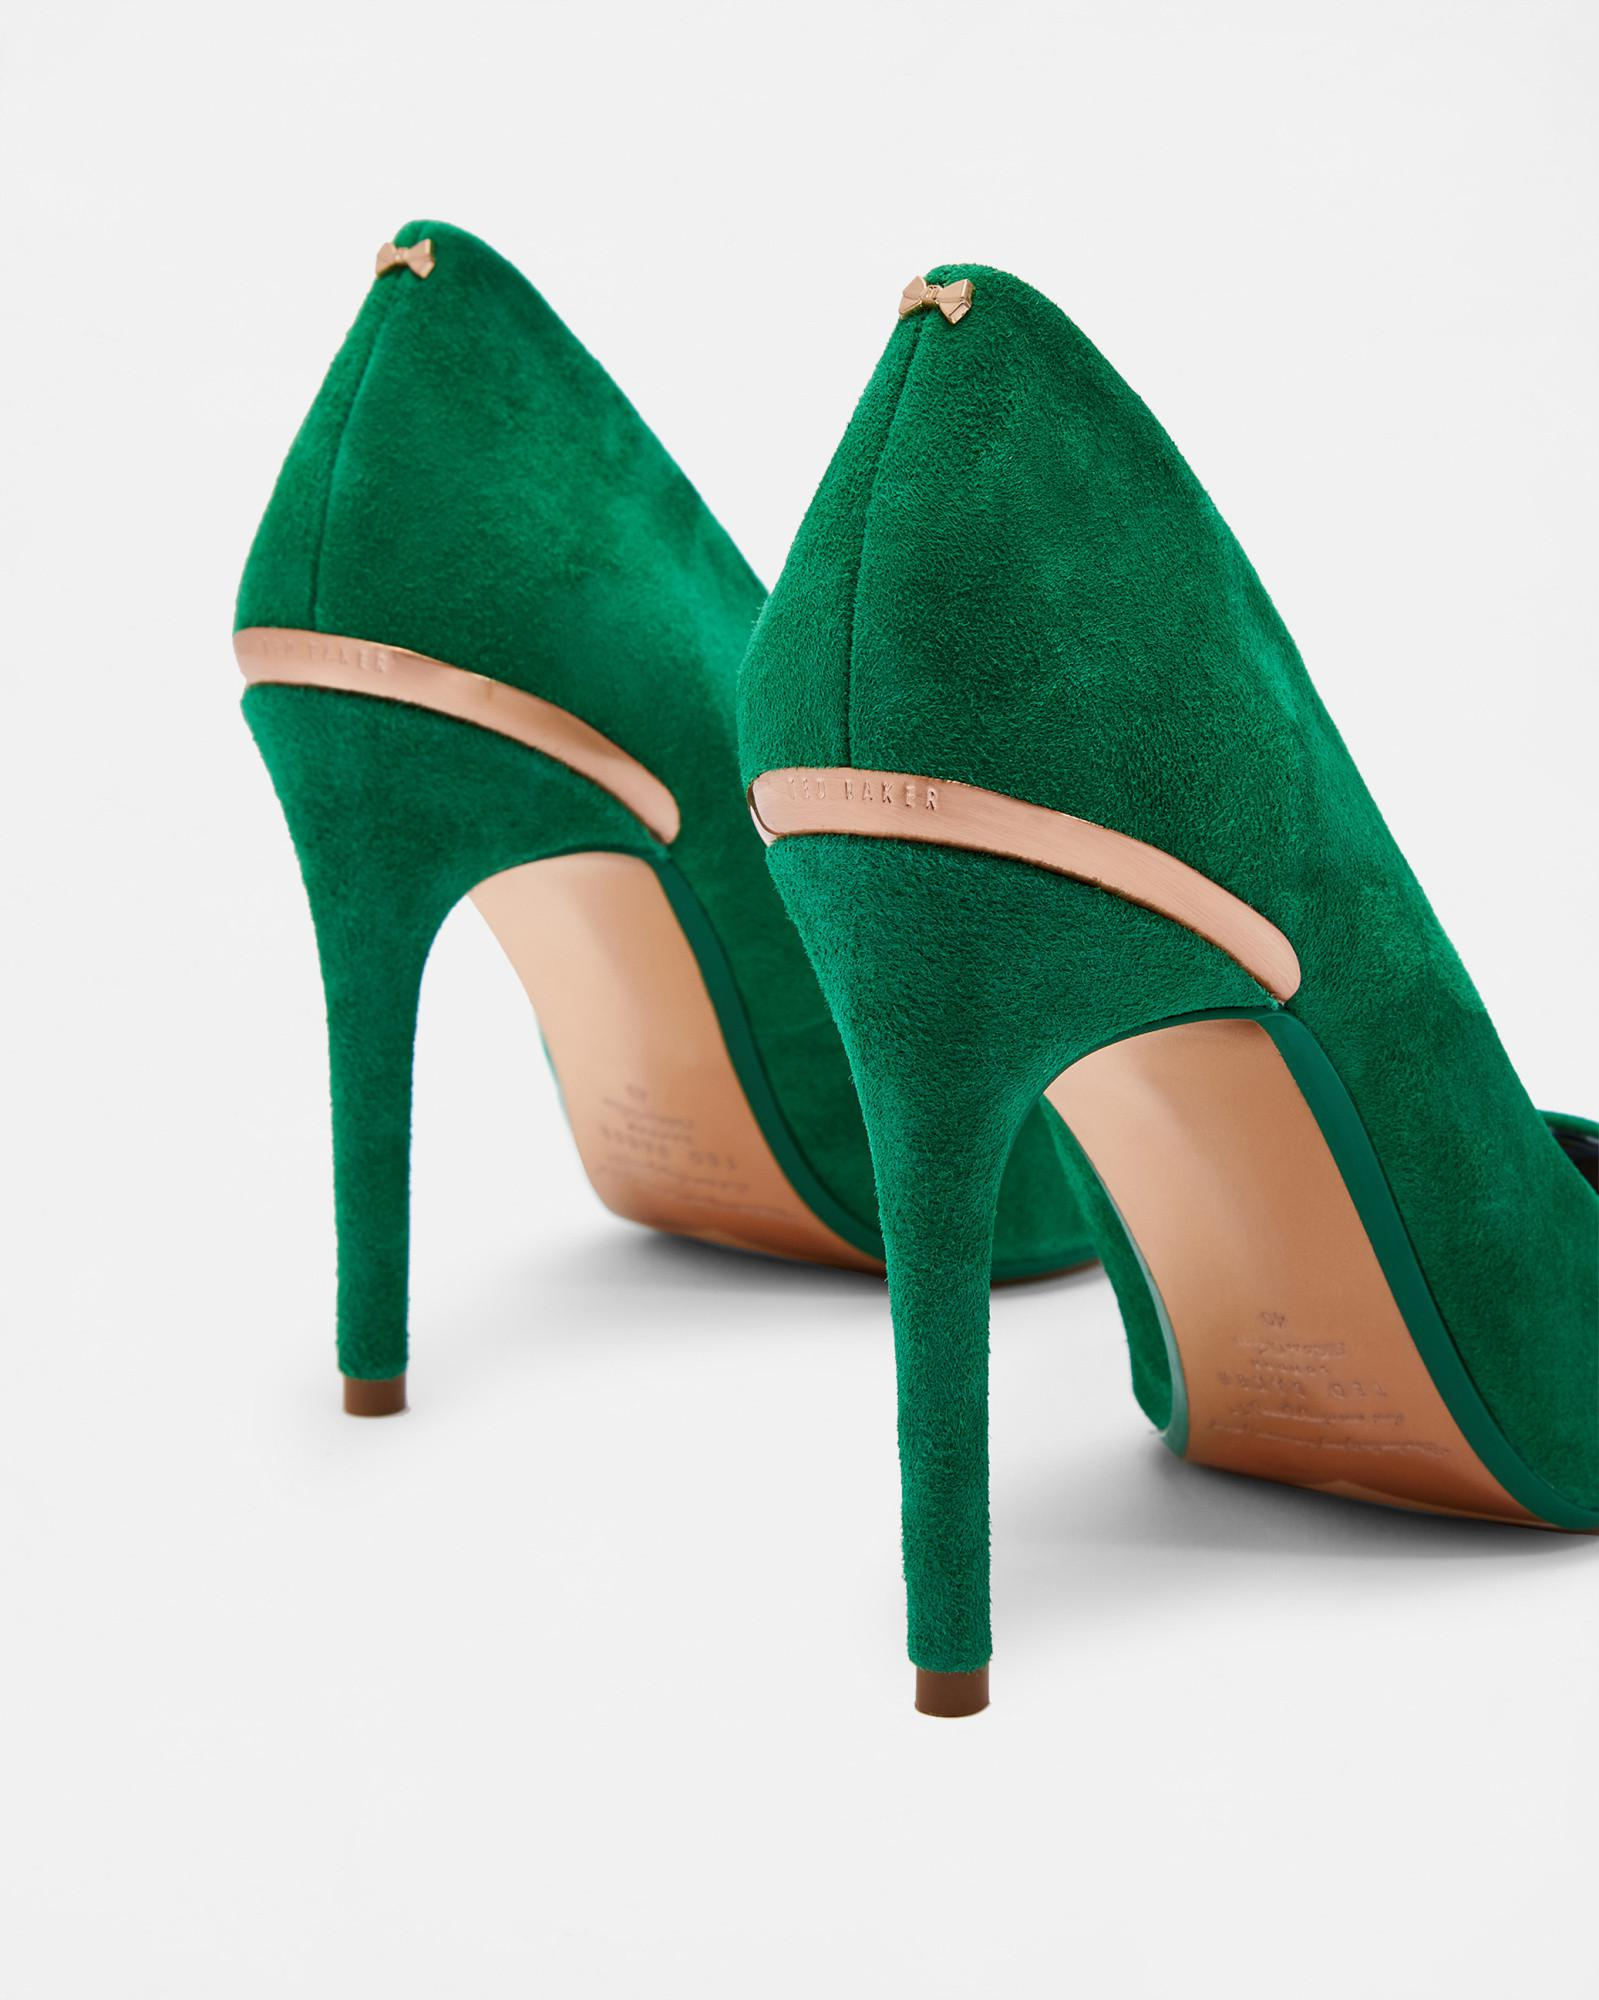 0c708ecdcaa1 Ted Baker Pointed Courts in Green - Lyst